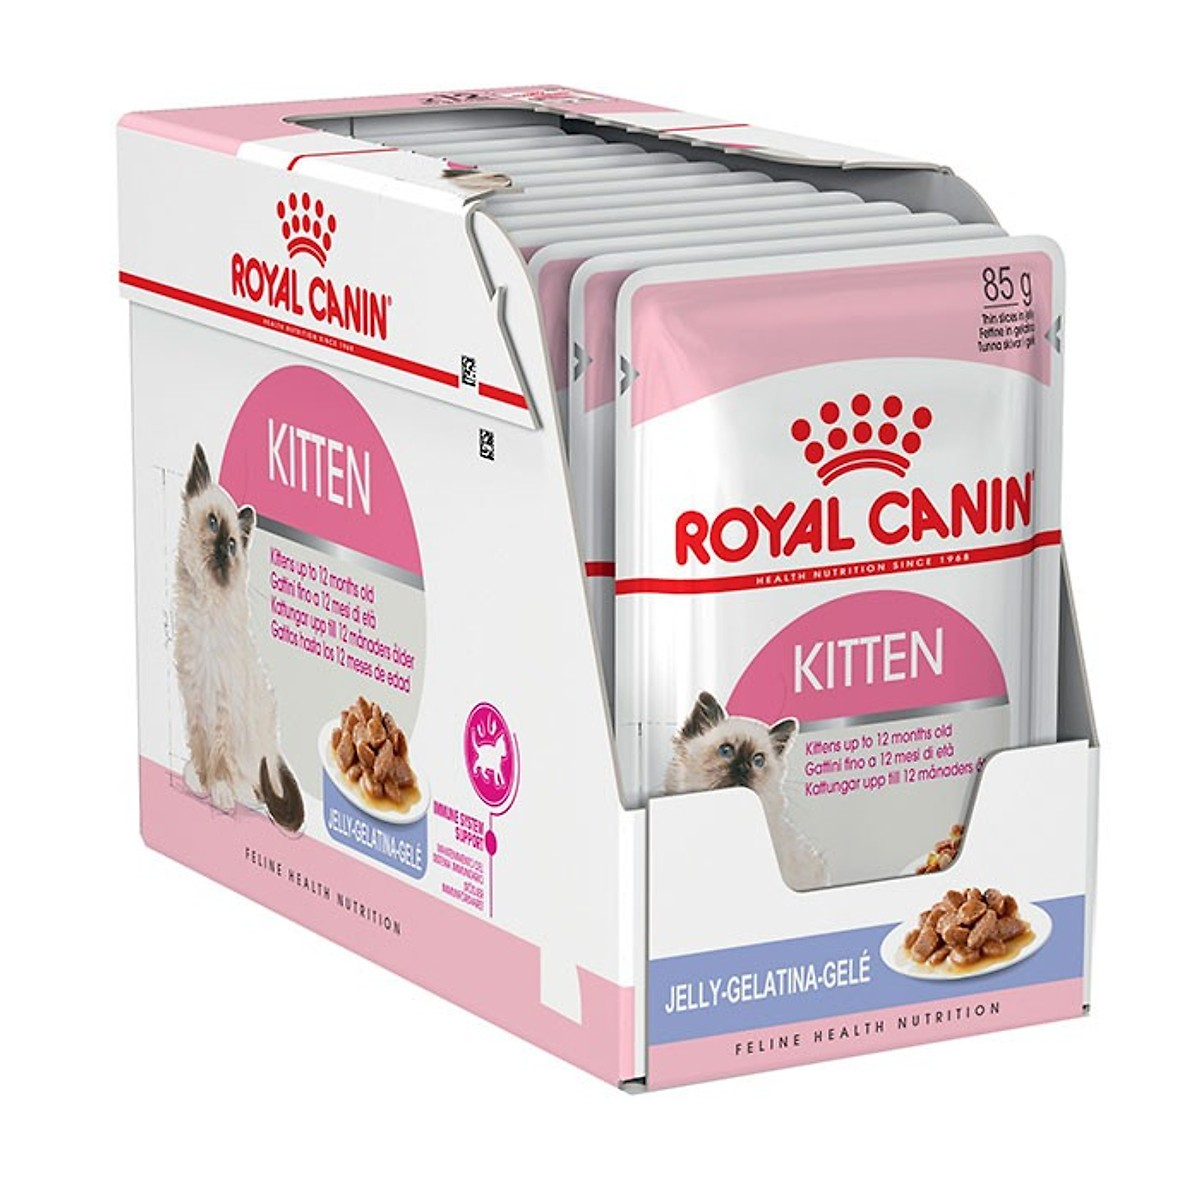 Pate ROYAL CANIN KITTEN Mèo con [Jelly] 85g